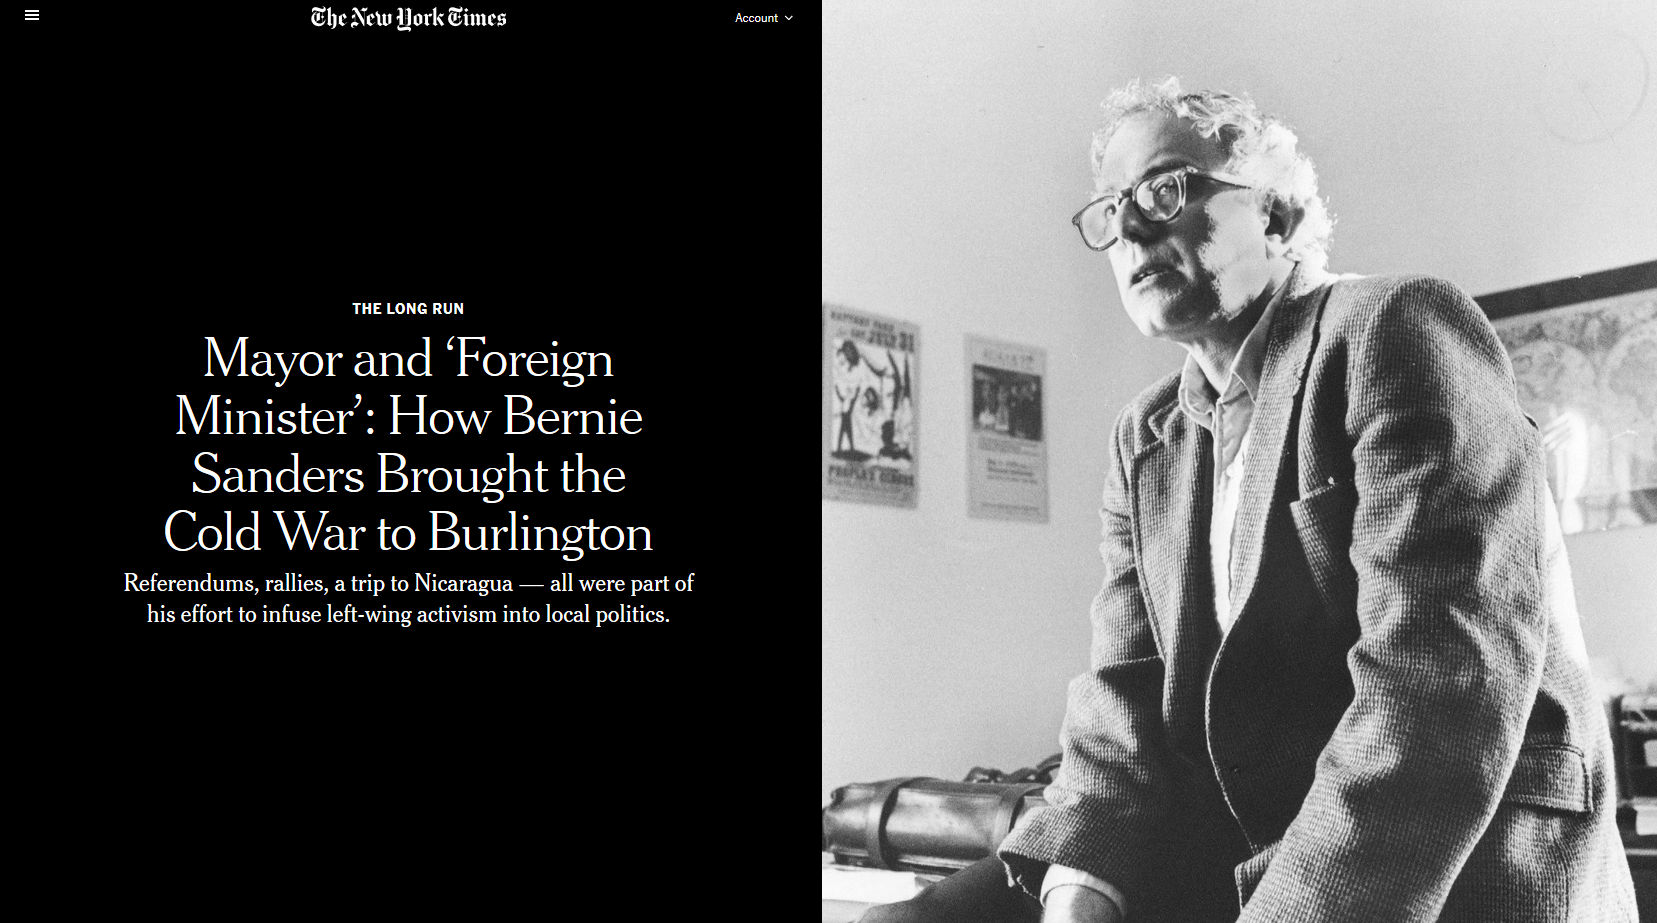 NYT: Mayor and 'Foreign Minister': How Bernie Sanders Brought the Cold War to Burlington